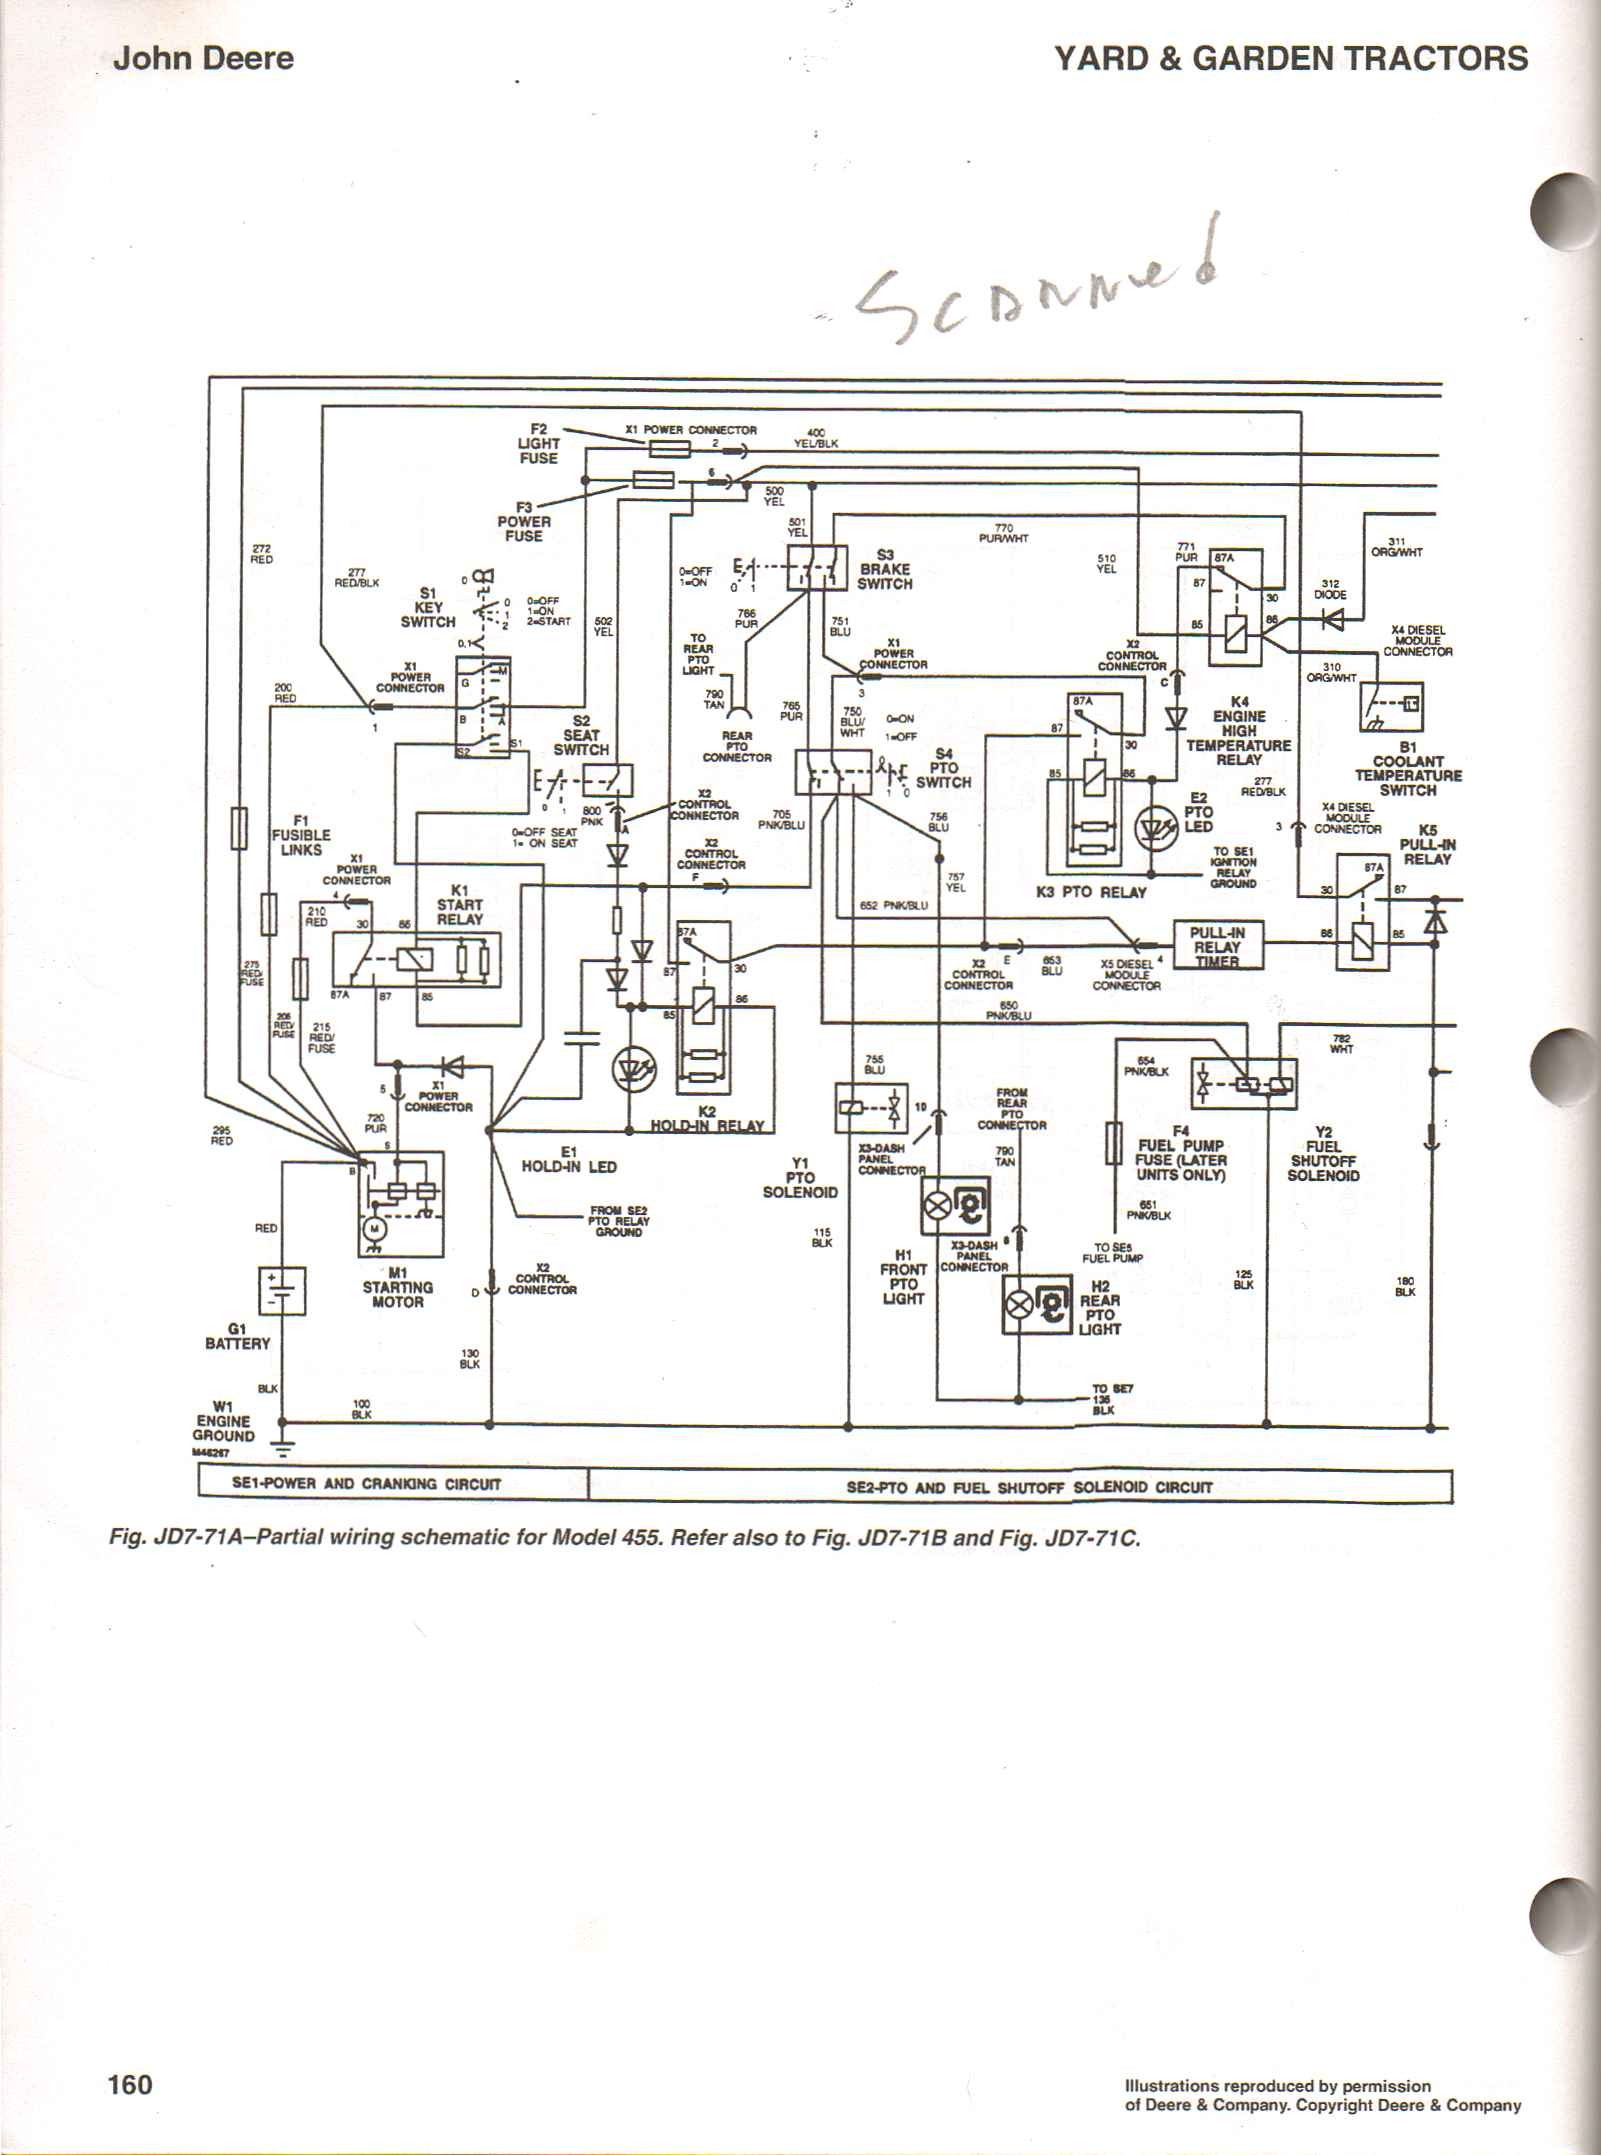 John Deere 445 Wiring Schematic Free Diagrams V Star 650 Diagram B2network Co